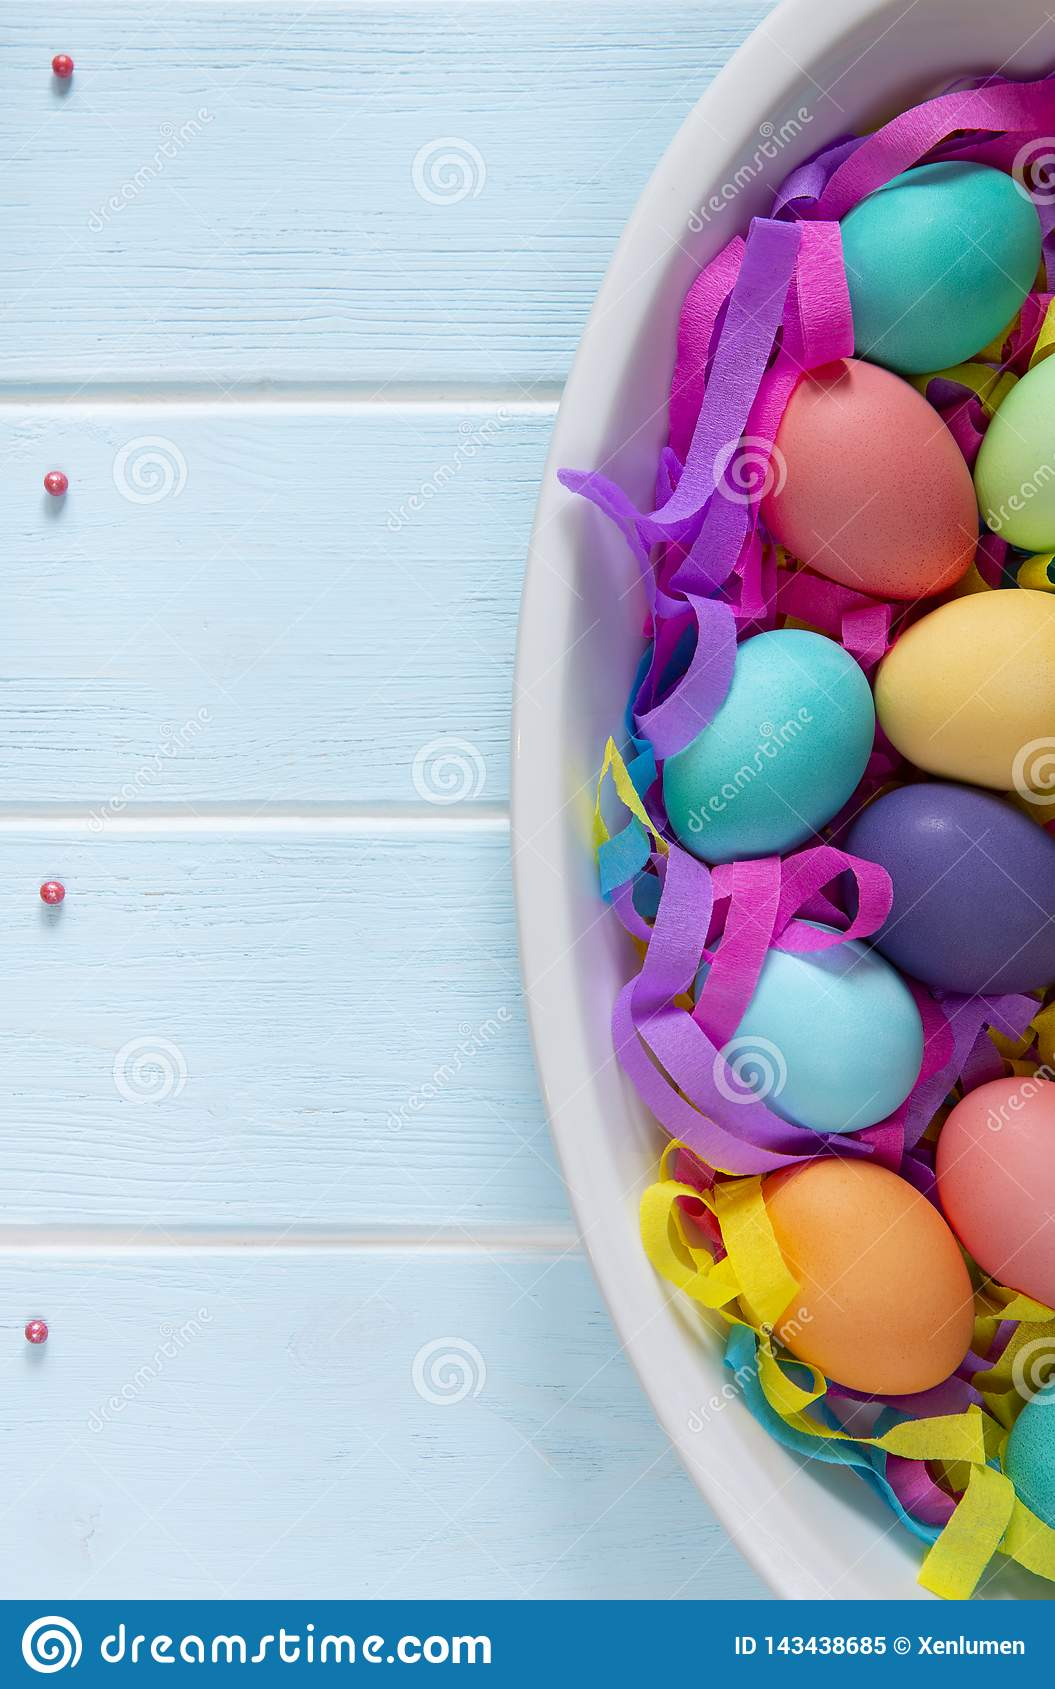 Dyed Easter eggs in a dish with colorful paper ribbons and sugar sprinkle confectionery dots